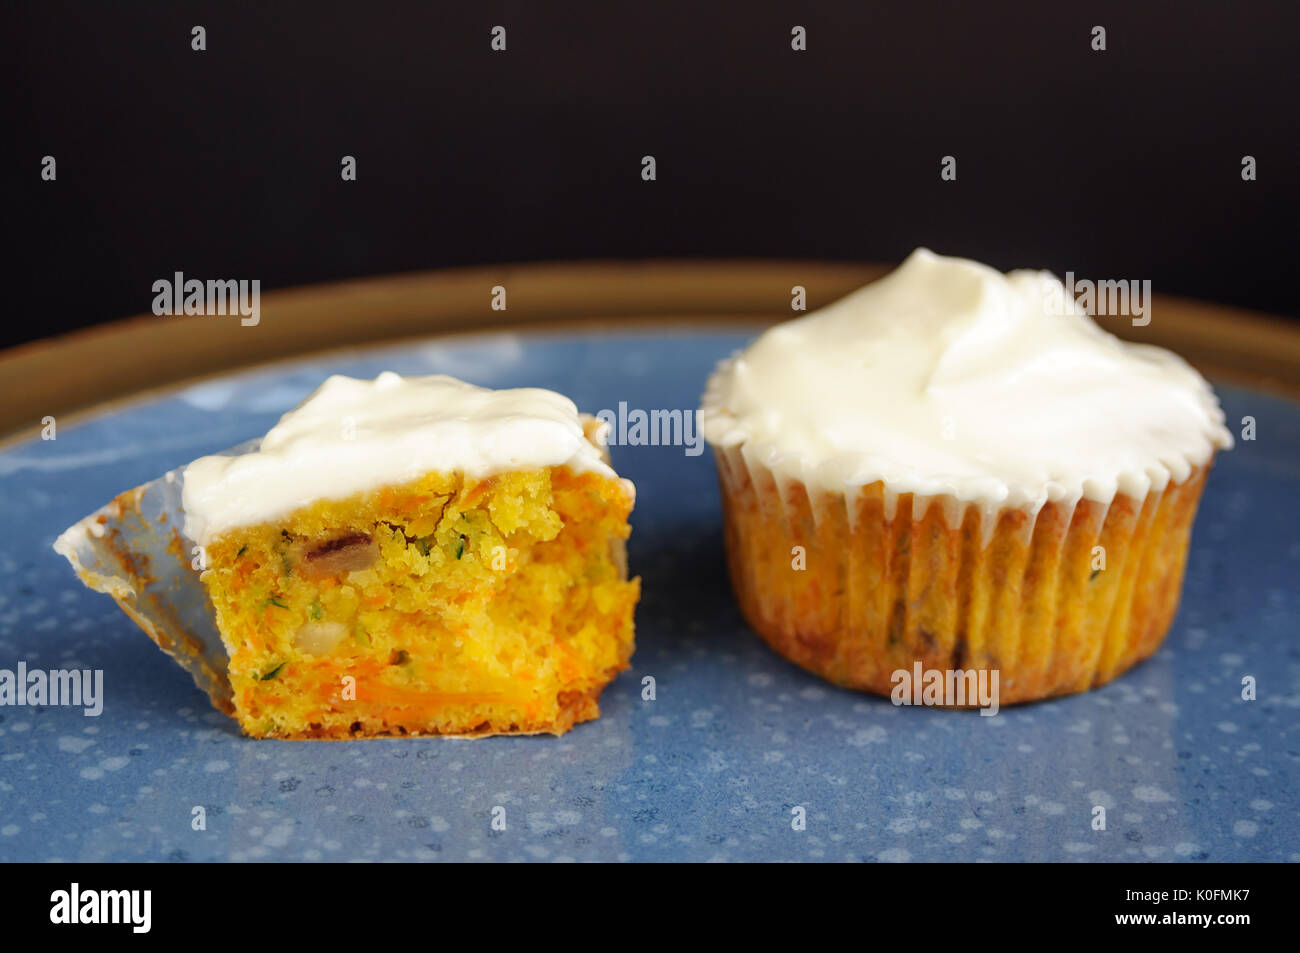 Zucchini and carrot cupcakes with Philadelphia cheese cream on blue plate on black surface - Stock Image